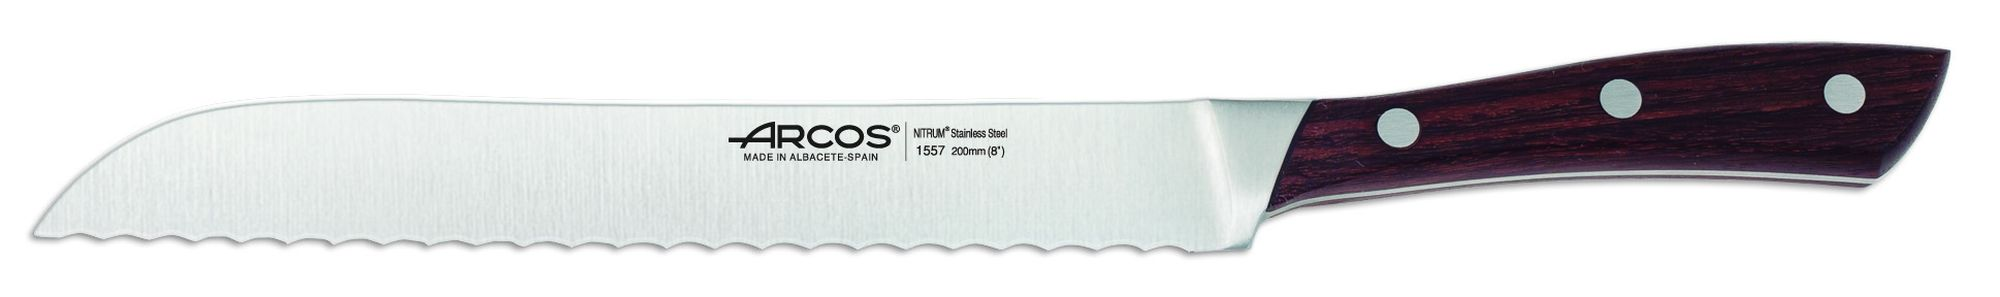 Bread Knife Arcos ref.: 155710